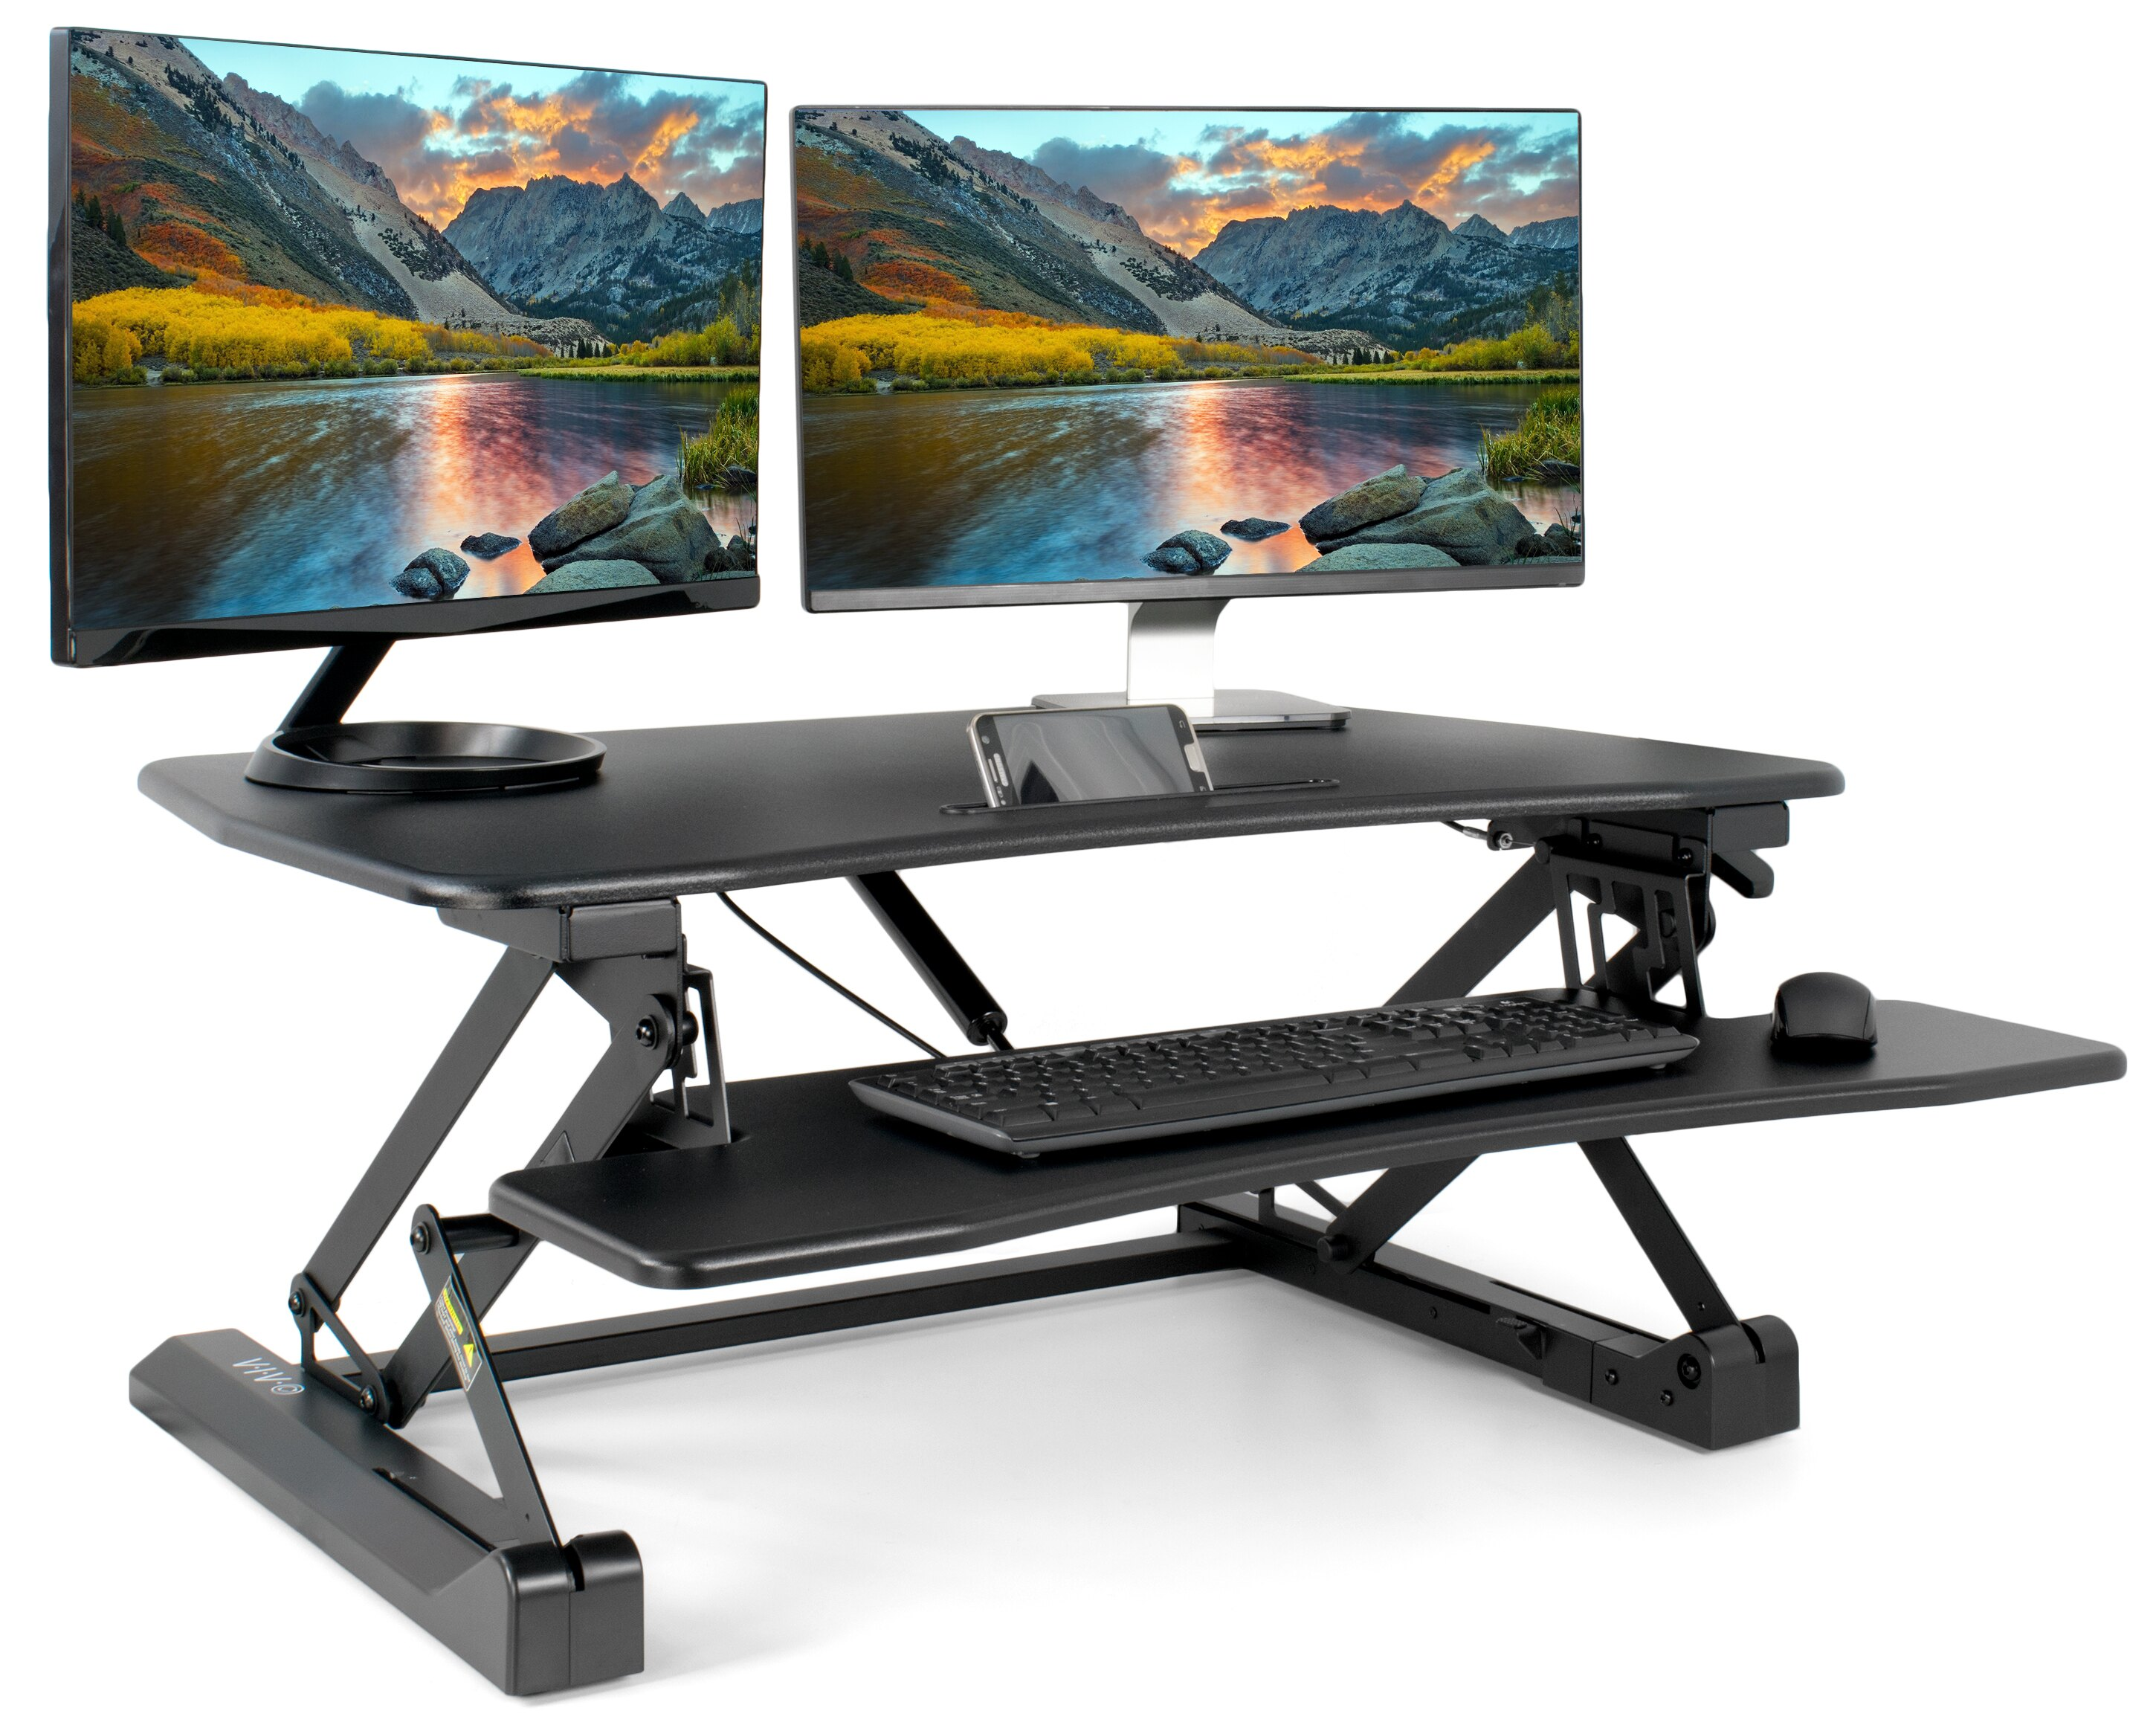 vivo black height adjustable standing desk single touch gas spring 36 tabletop riser sit - Height Adjustable Standing Desk